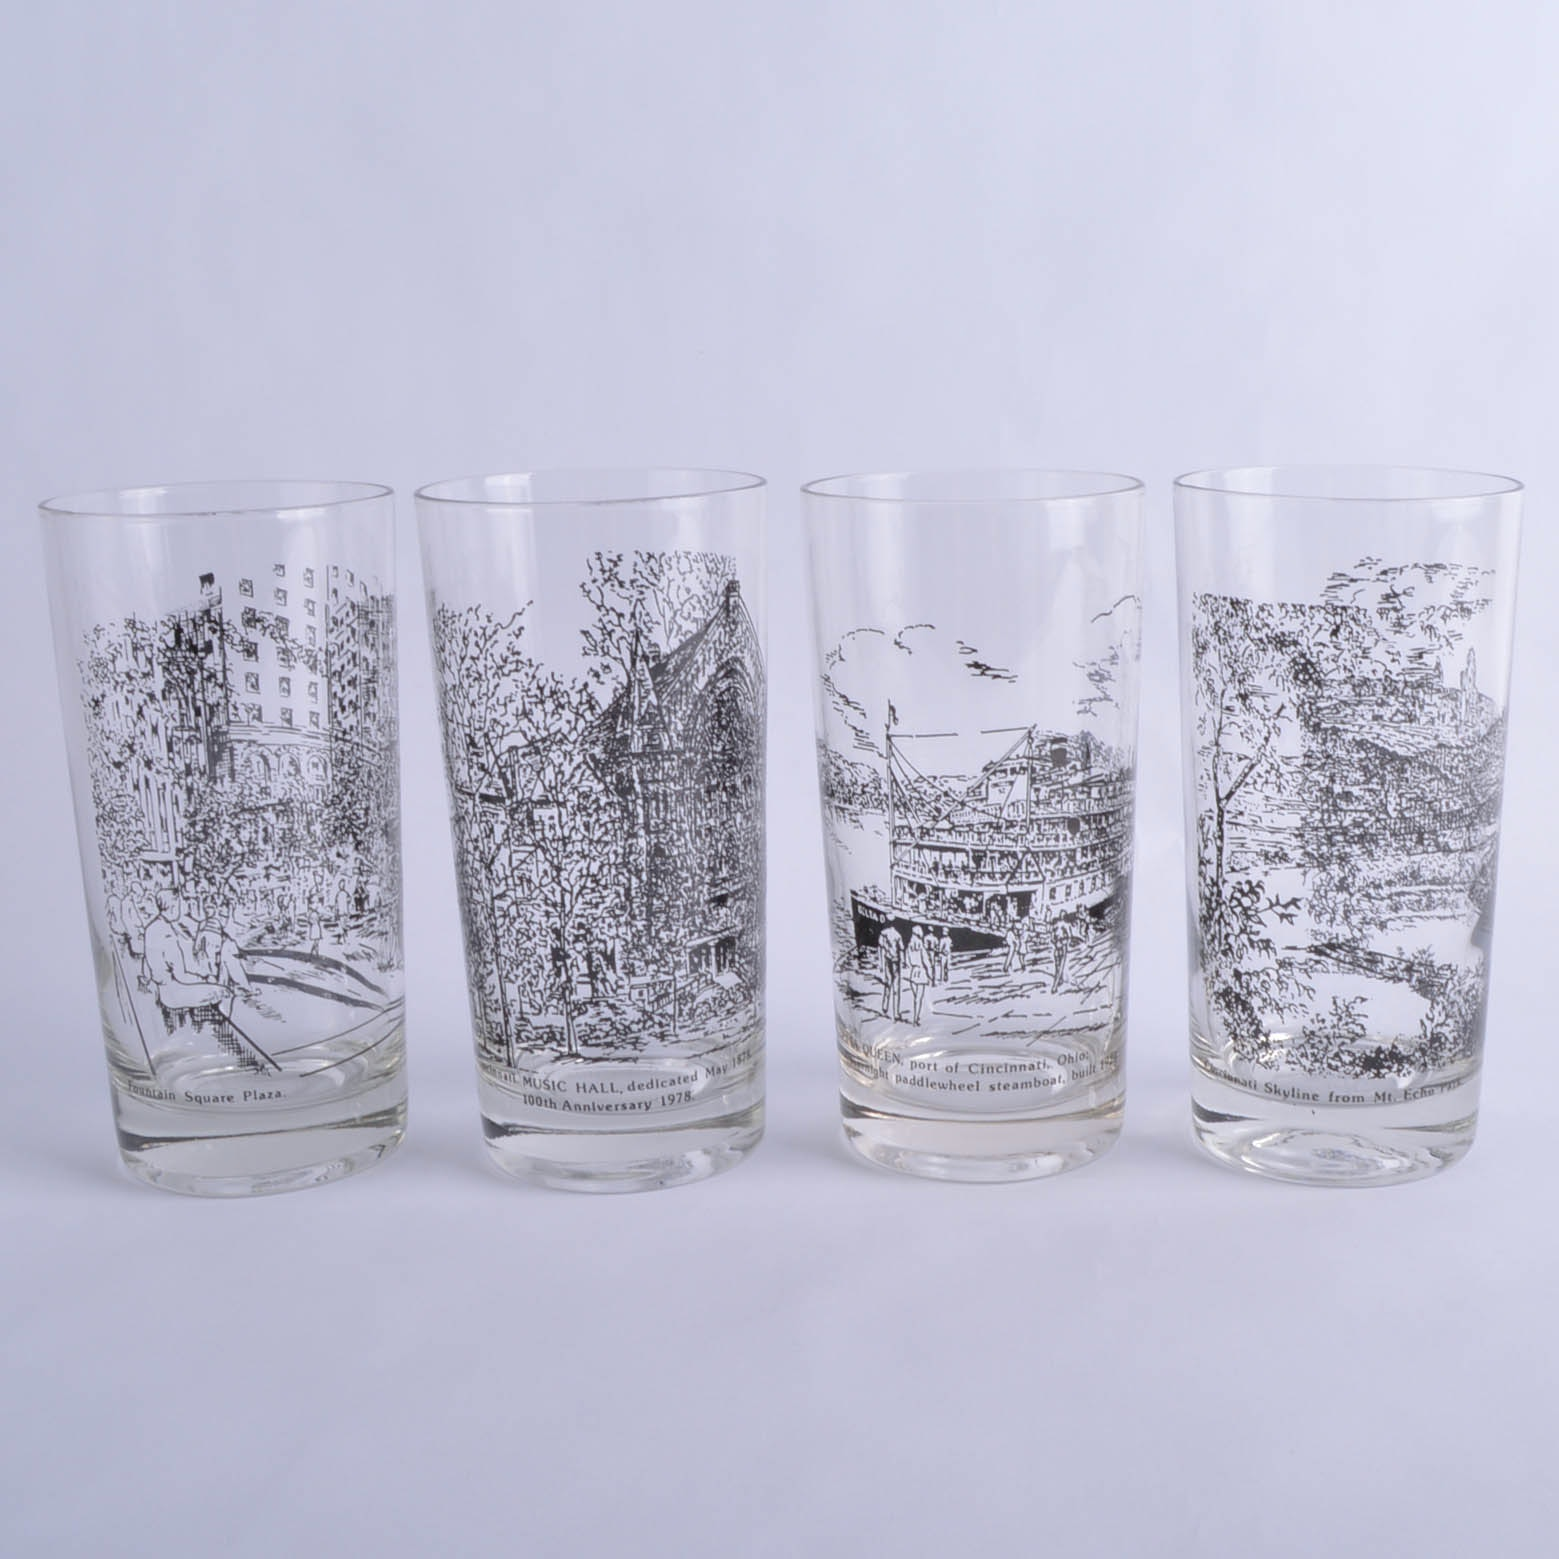 Signed carolyn williams cincinnati scene glassware